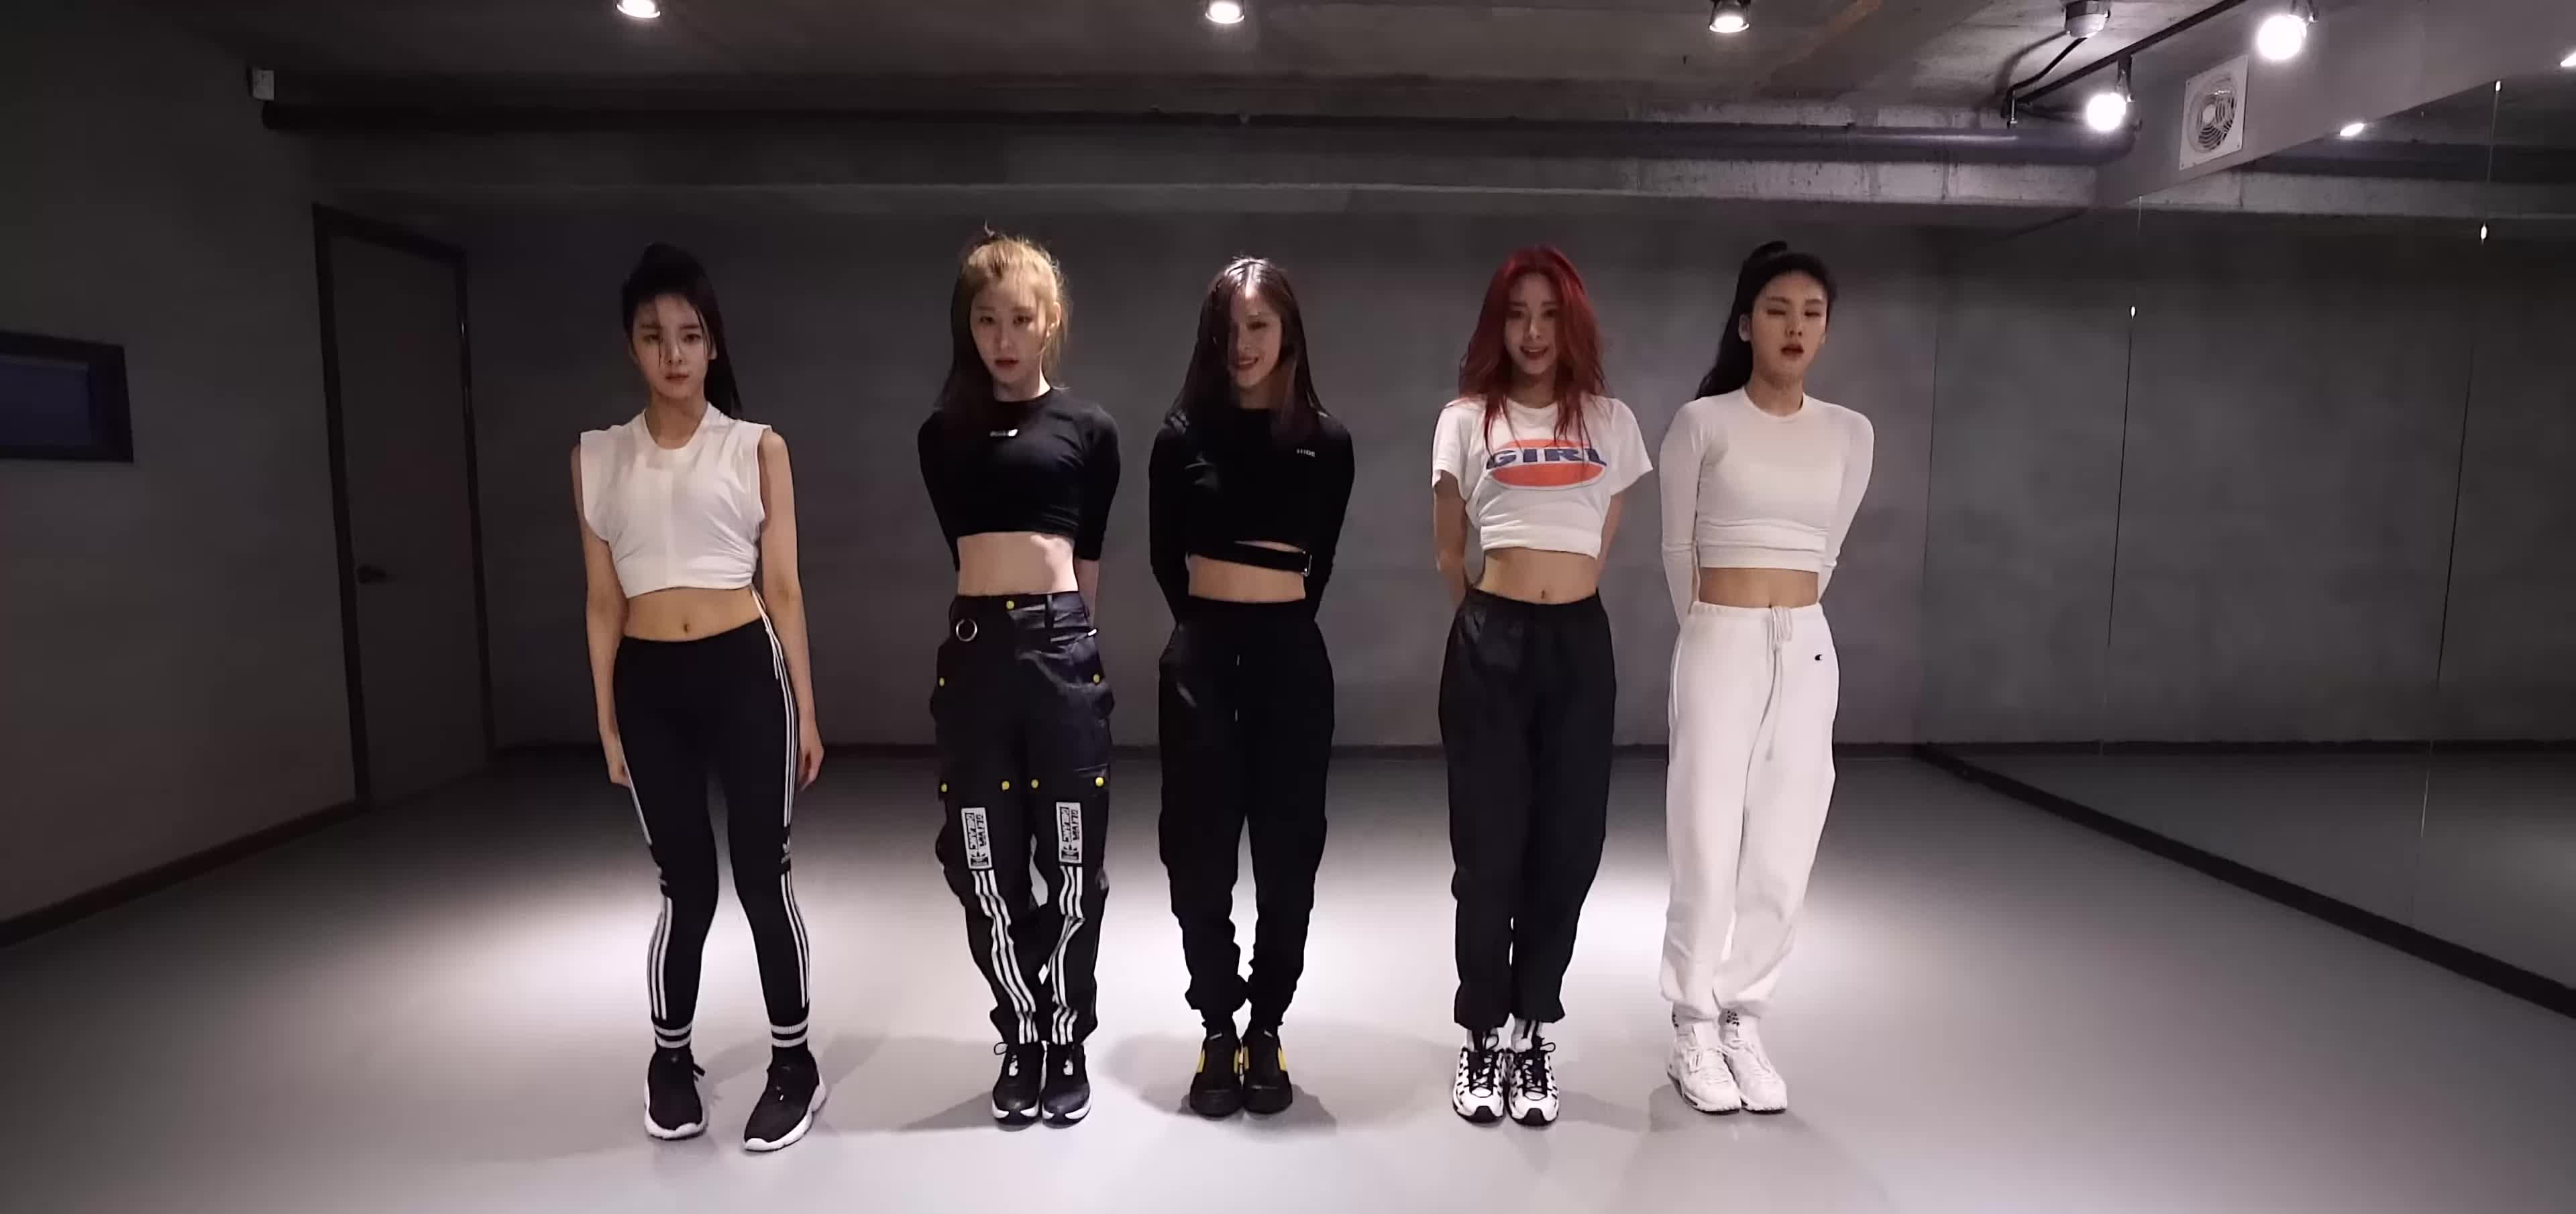 Itzy Gif By Coisher